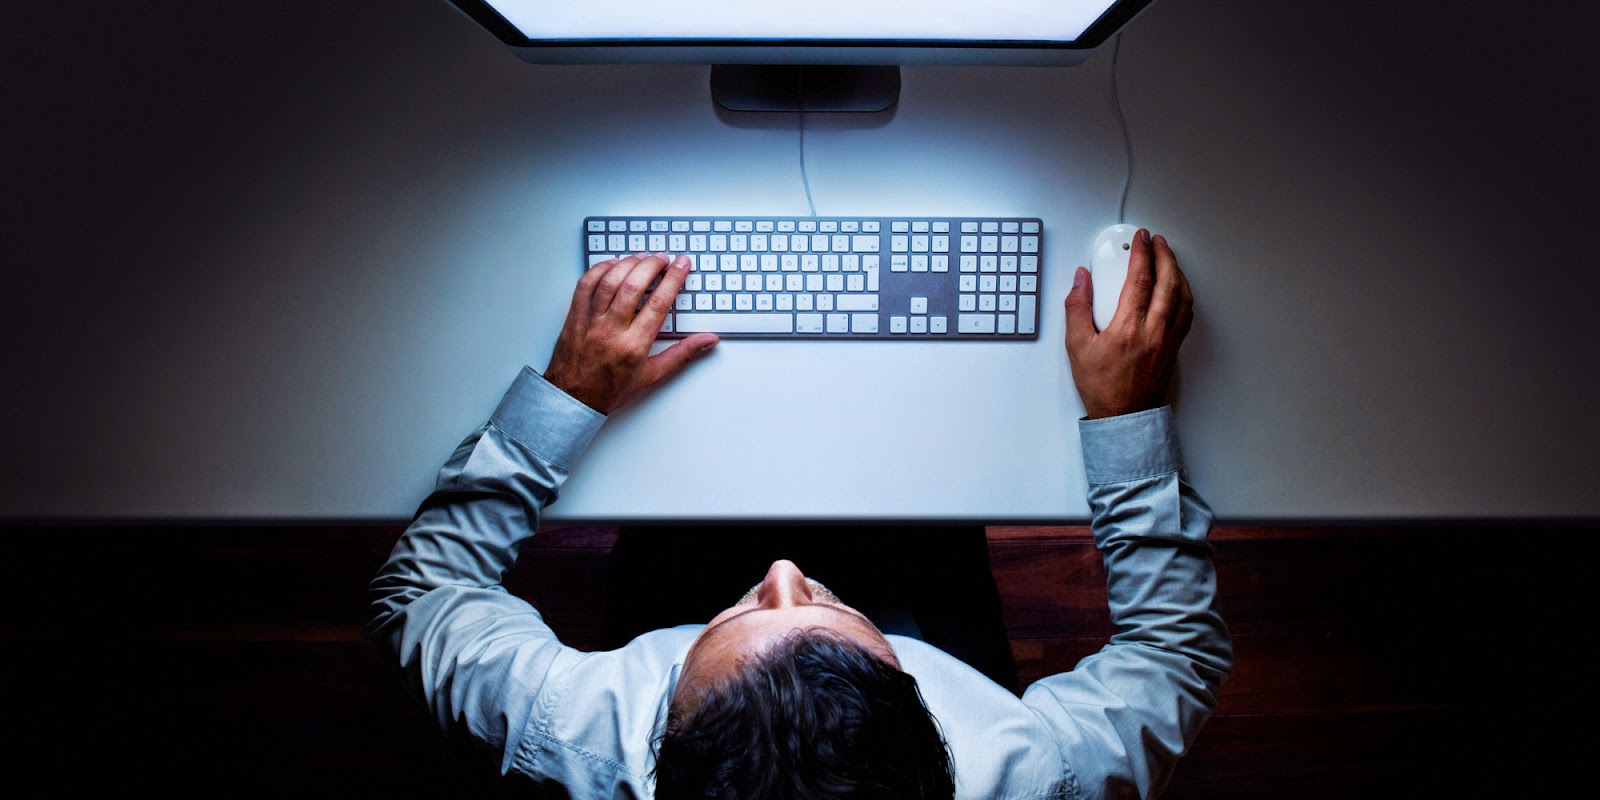 6 Ways For Tech Geeks To Keep Up With Modern Adjustments To Technology